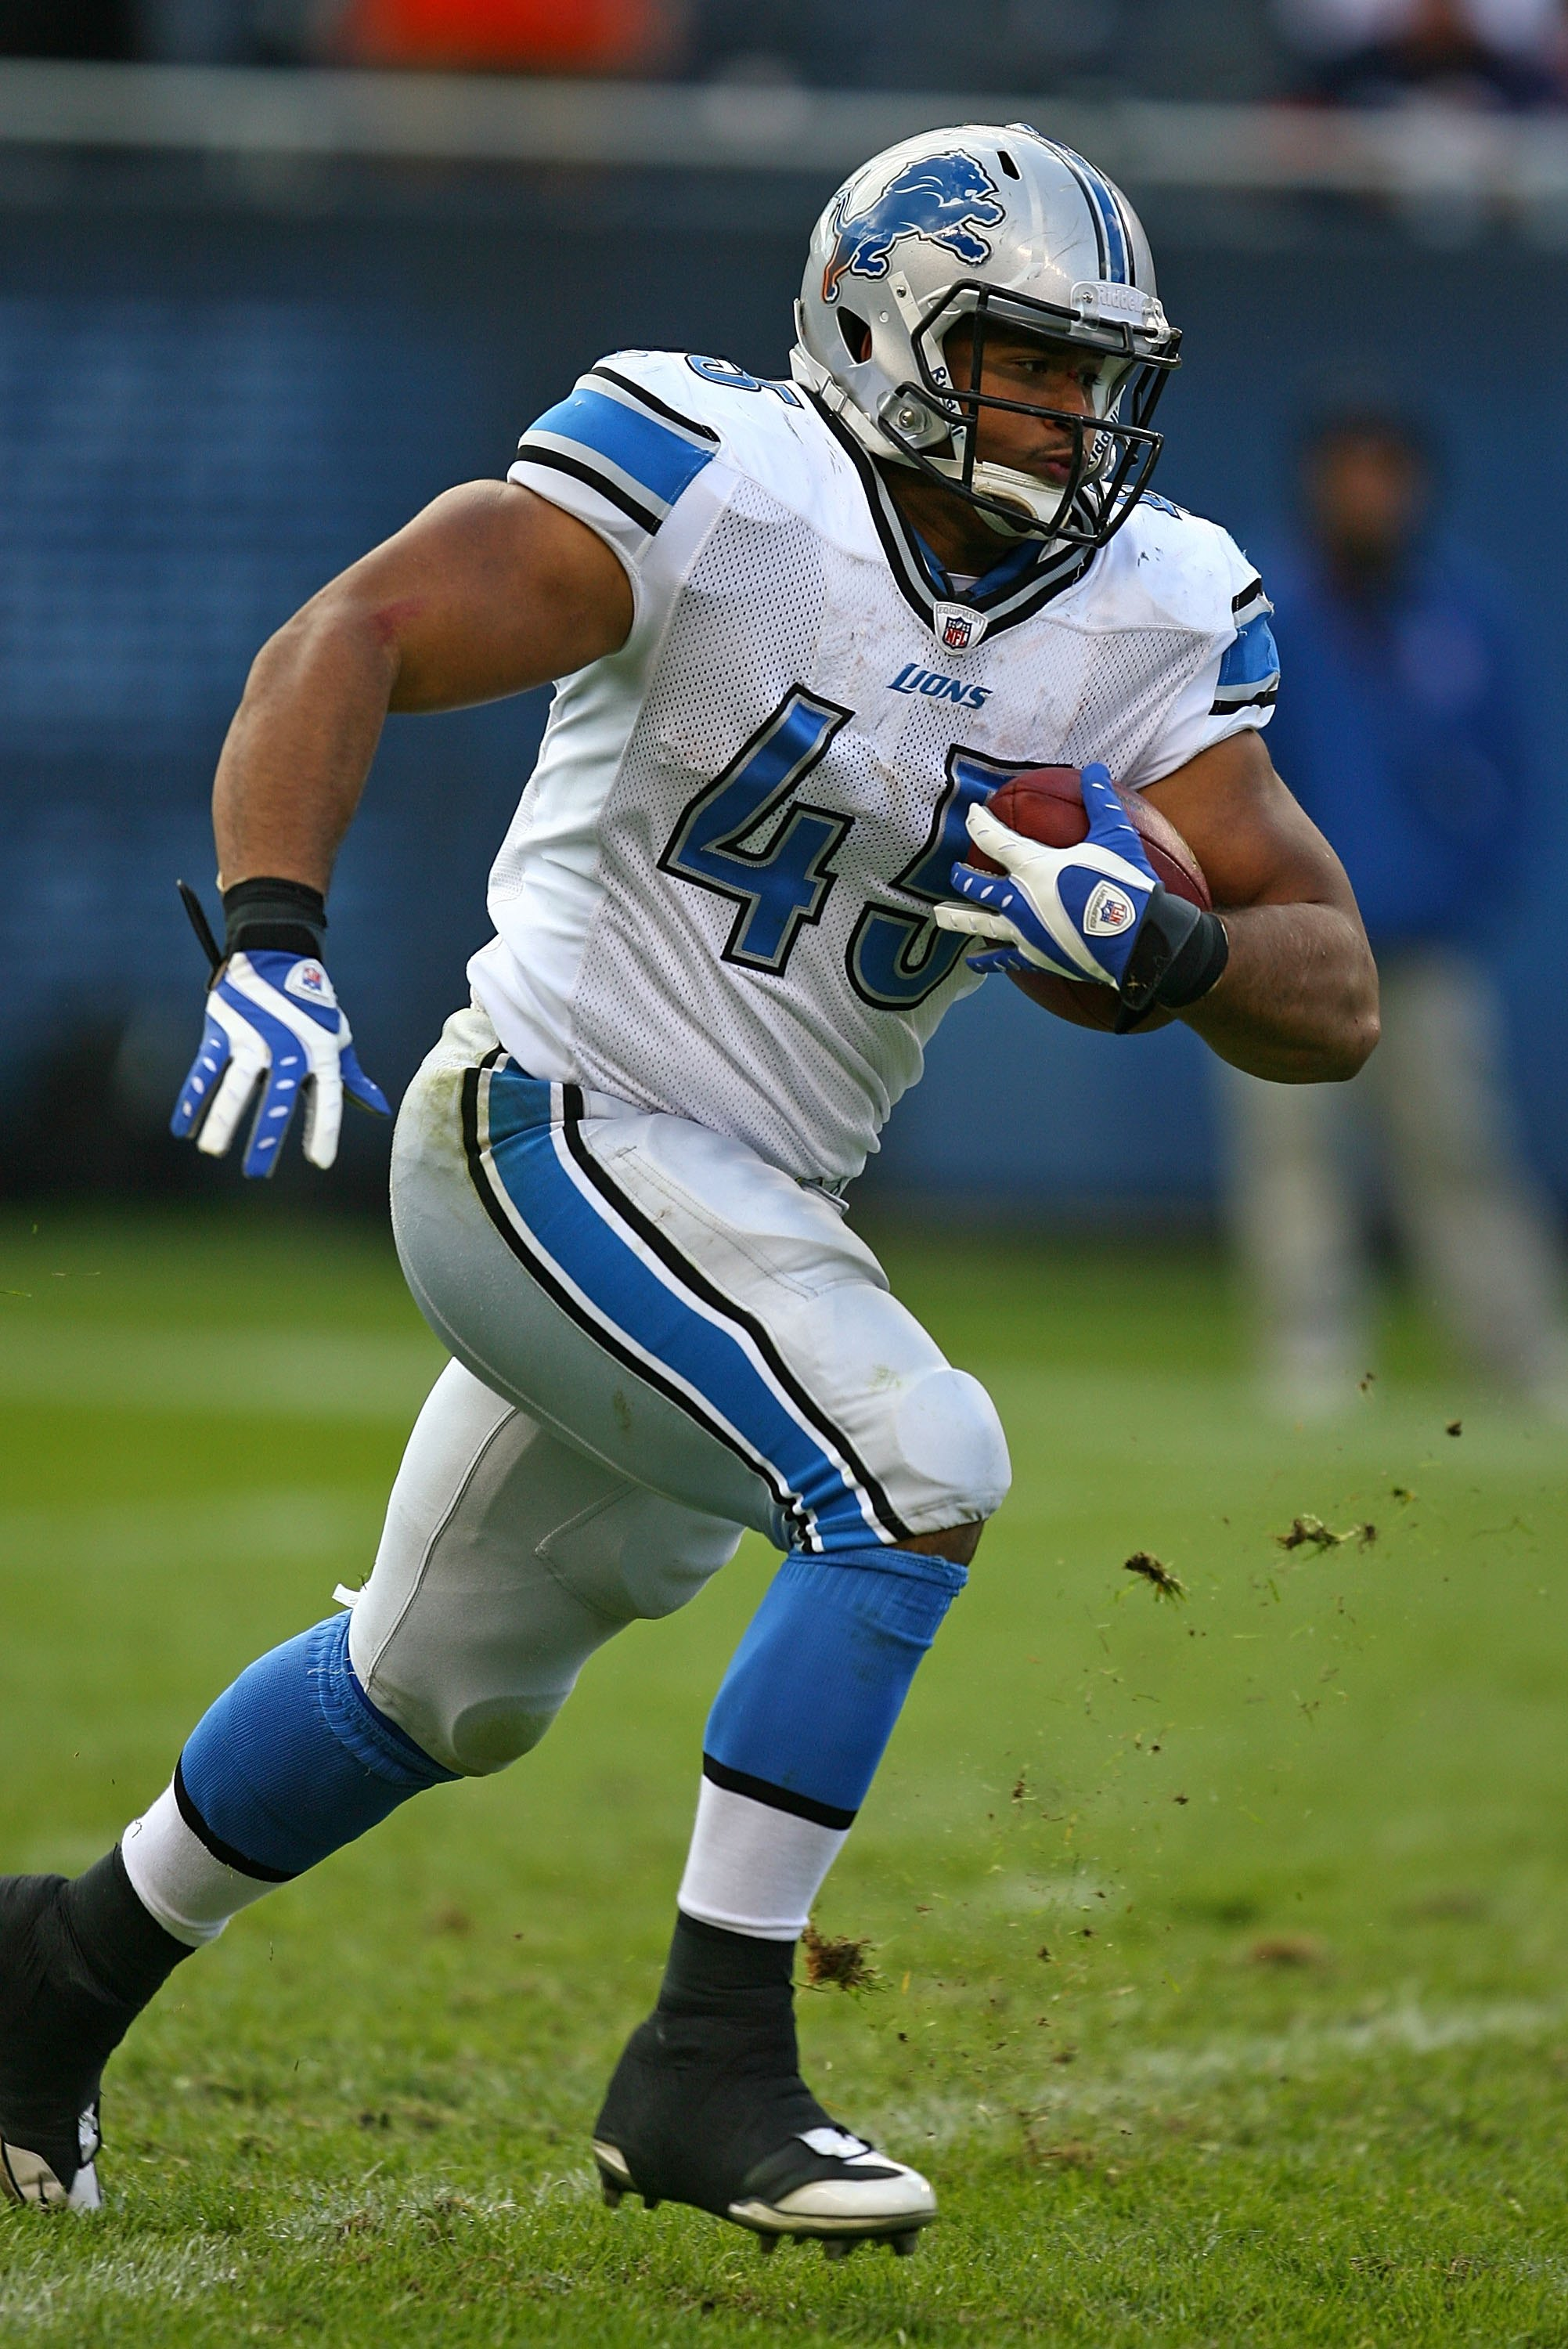 CHICAGO - OCTOBER 04: Jerome Felton #45 of the Detroit Lions runs with the ball against the Chicago Bears on October 4, 2009 at Soldier Field in Chicago, Illinois. The Bears defeated the Lions 48-24. (Photo by Jonathan Daniel/Getty Images)